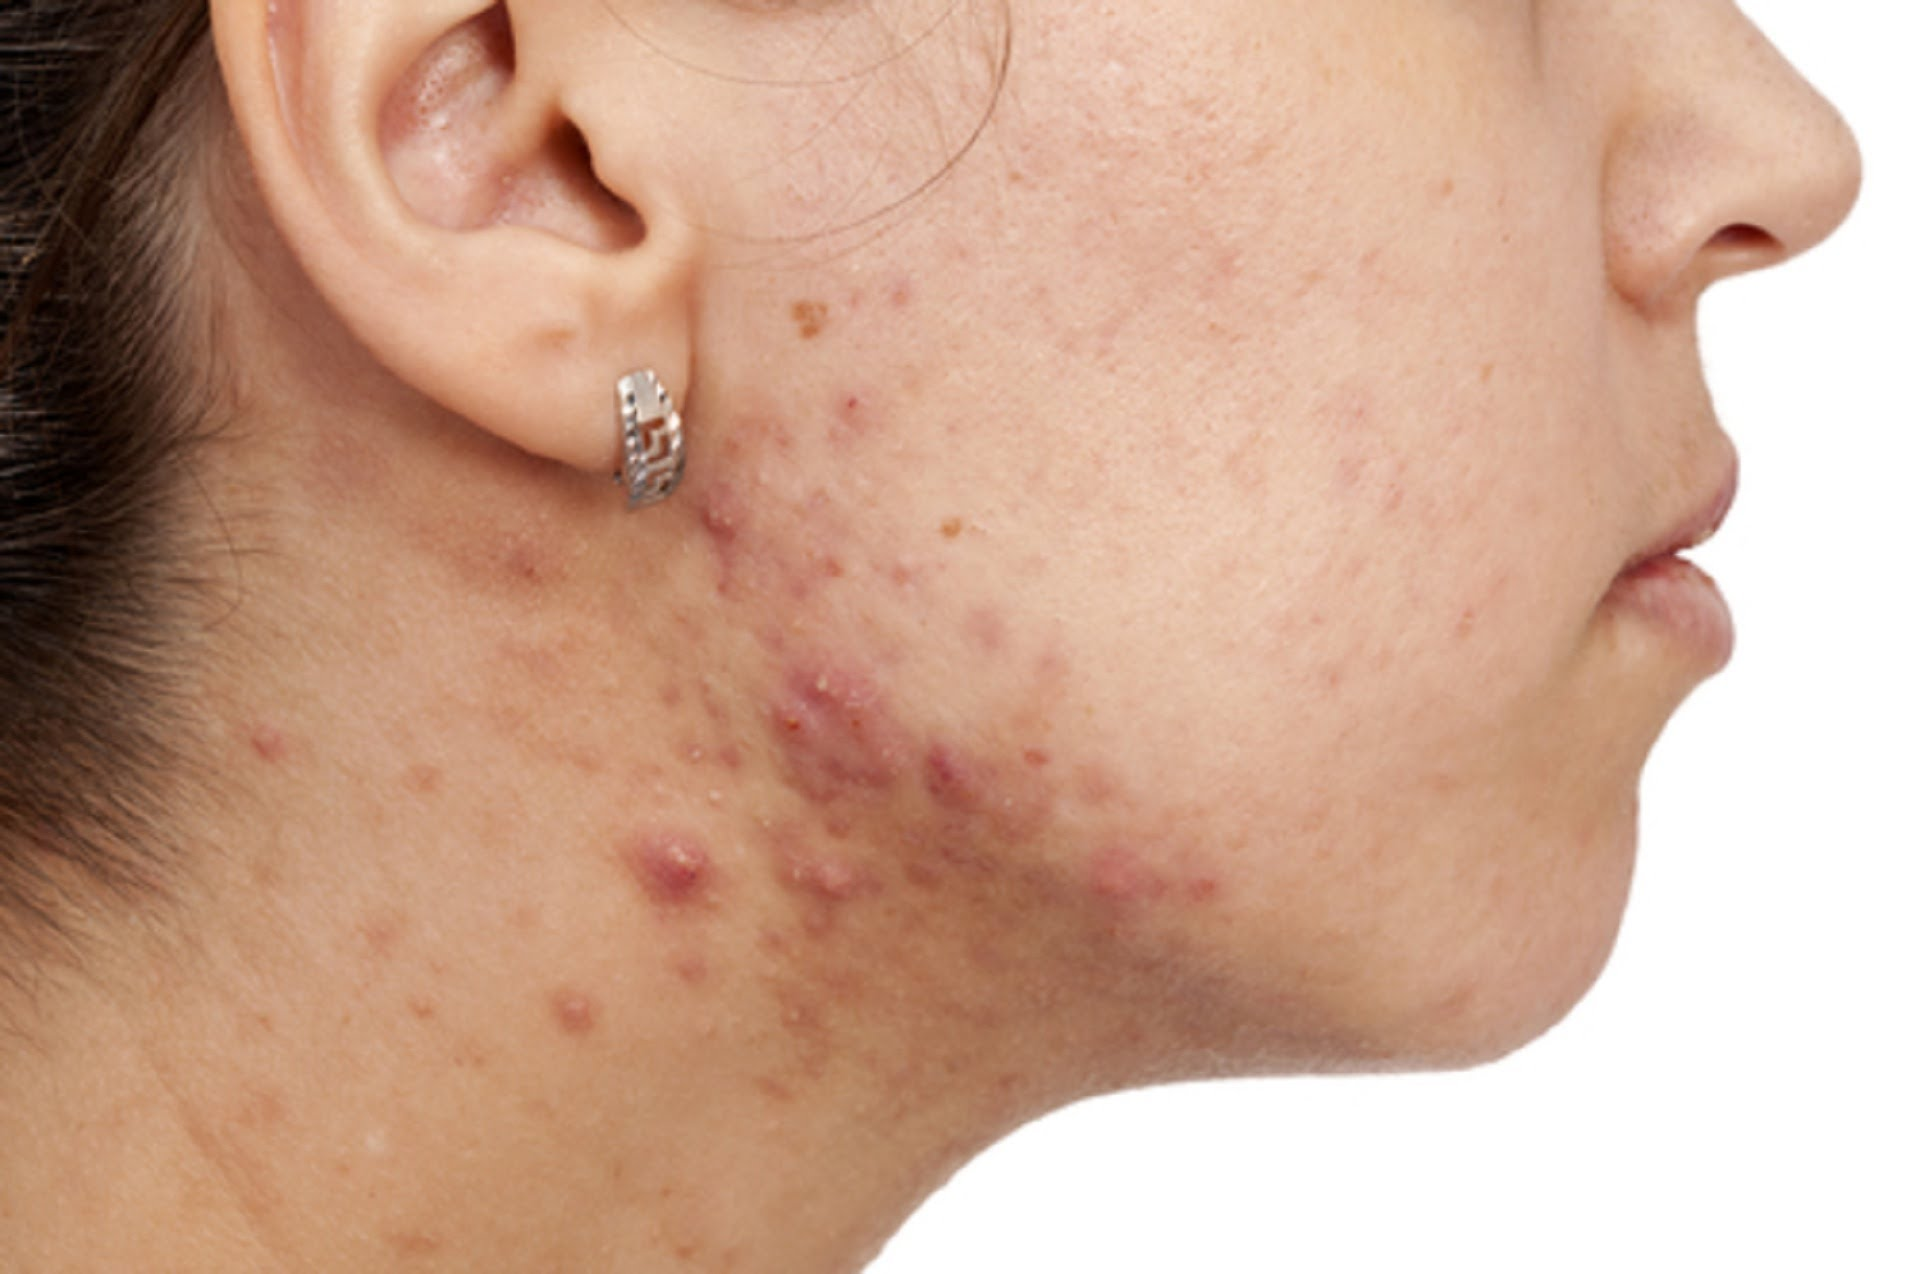 Adult Acne - Updates